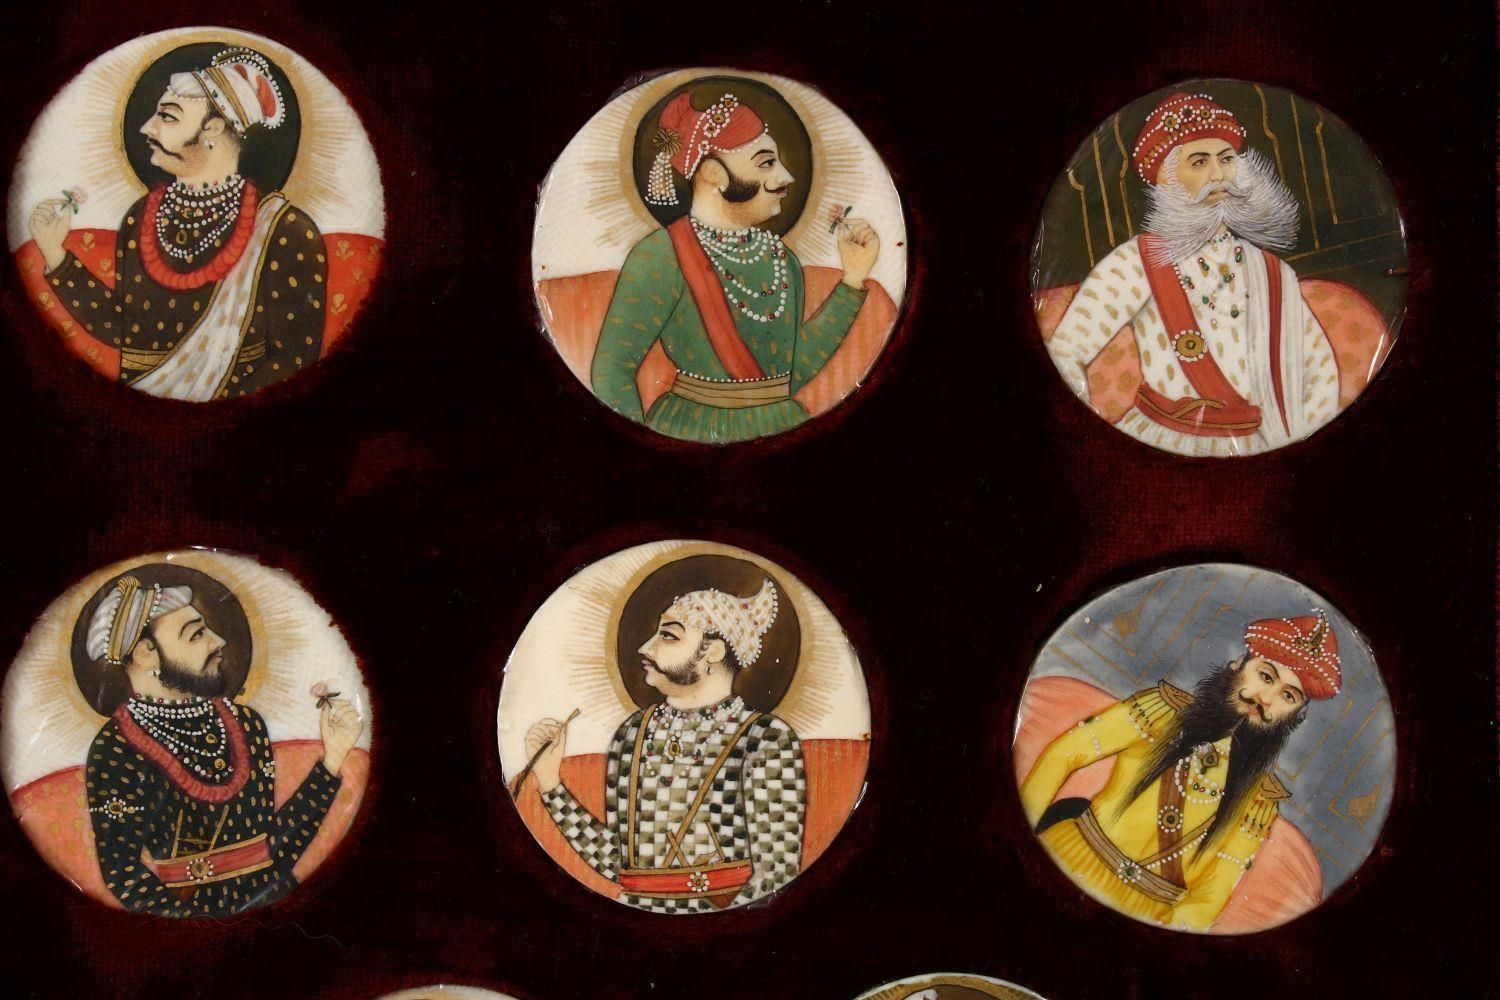 A BOXED SET OF THIRTEEN 18TH/19TH CENTURY PERSIAN CARVED & PAINTED IVORY MINIATURES, each of the - Image 3 of 10